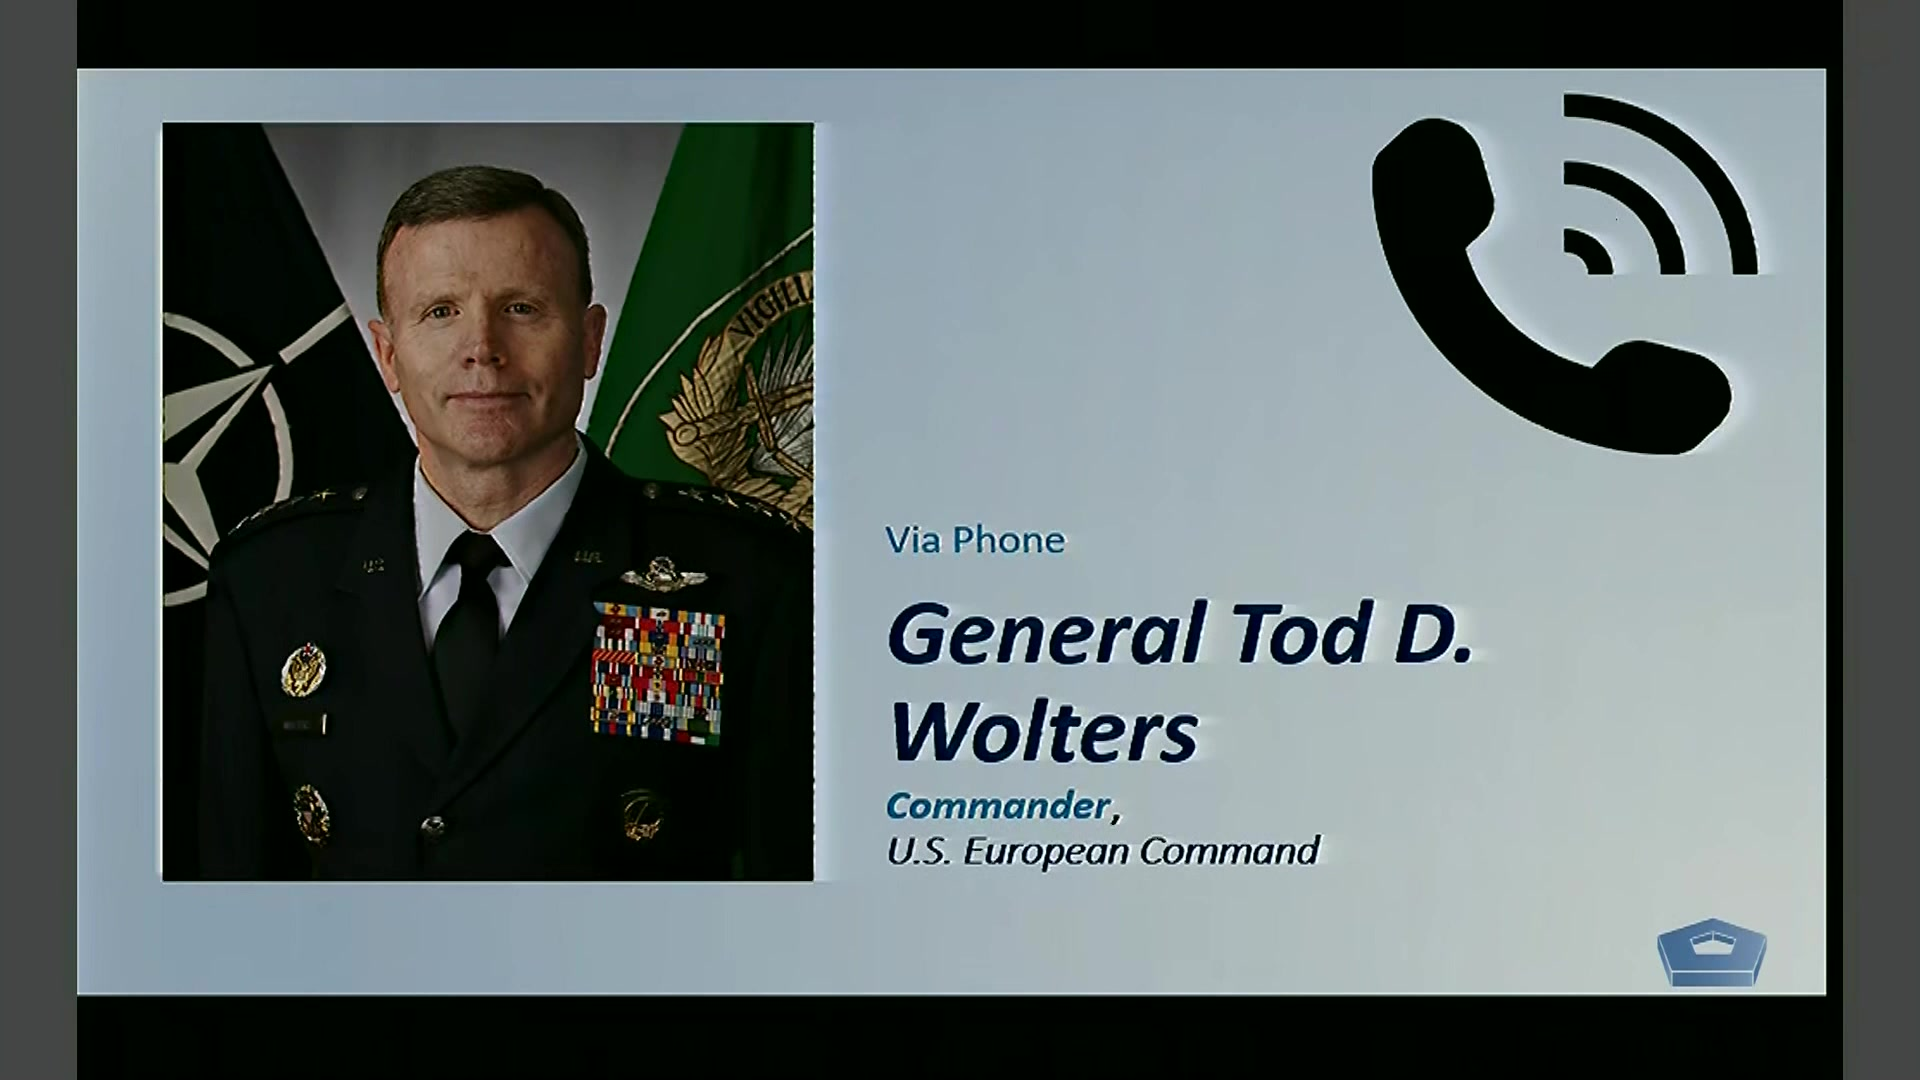 Air Force Gen. Tod D. Wolters, commander of U.S. European Command, conducts a Pentagon news conference via telephone about the command's response to COVID-19, March 20, 2020.